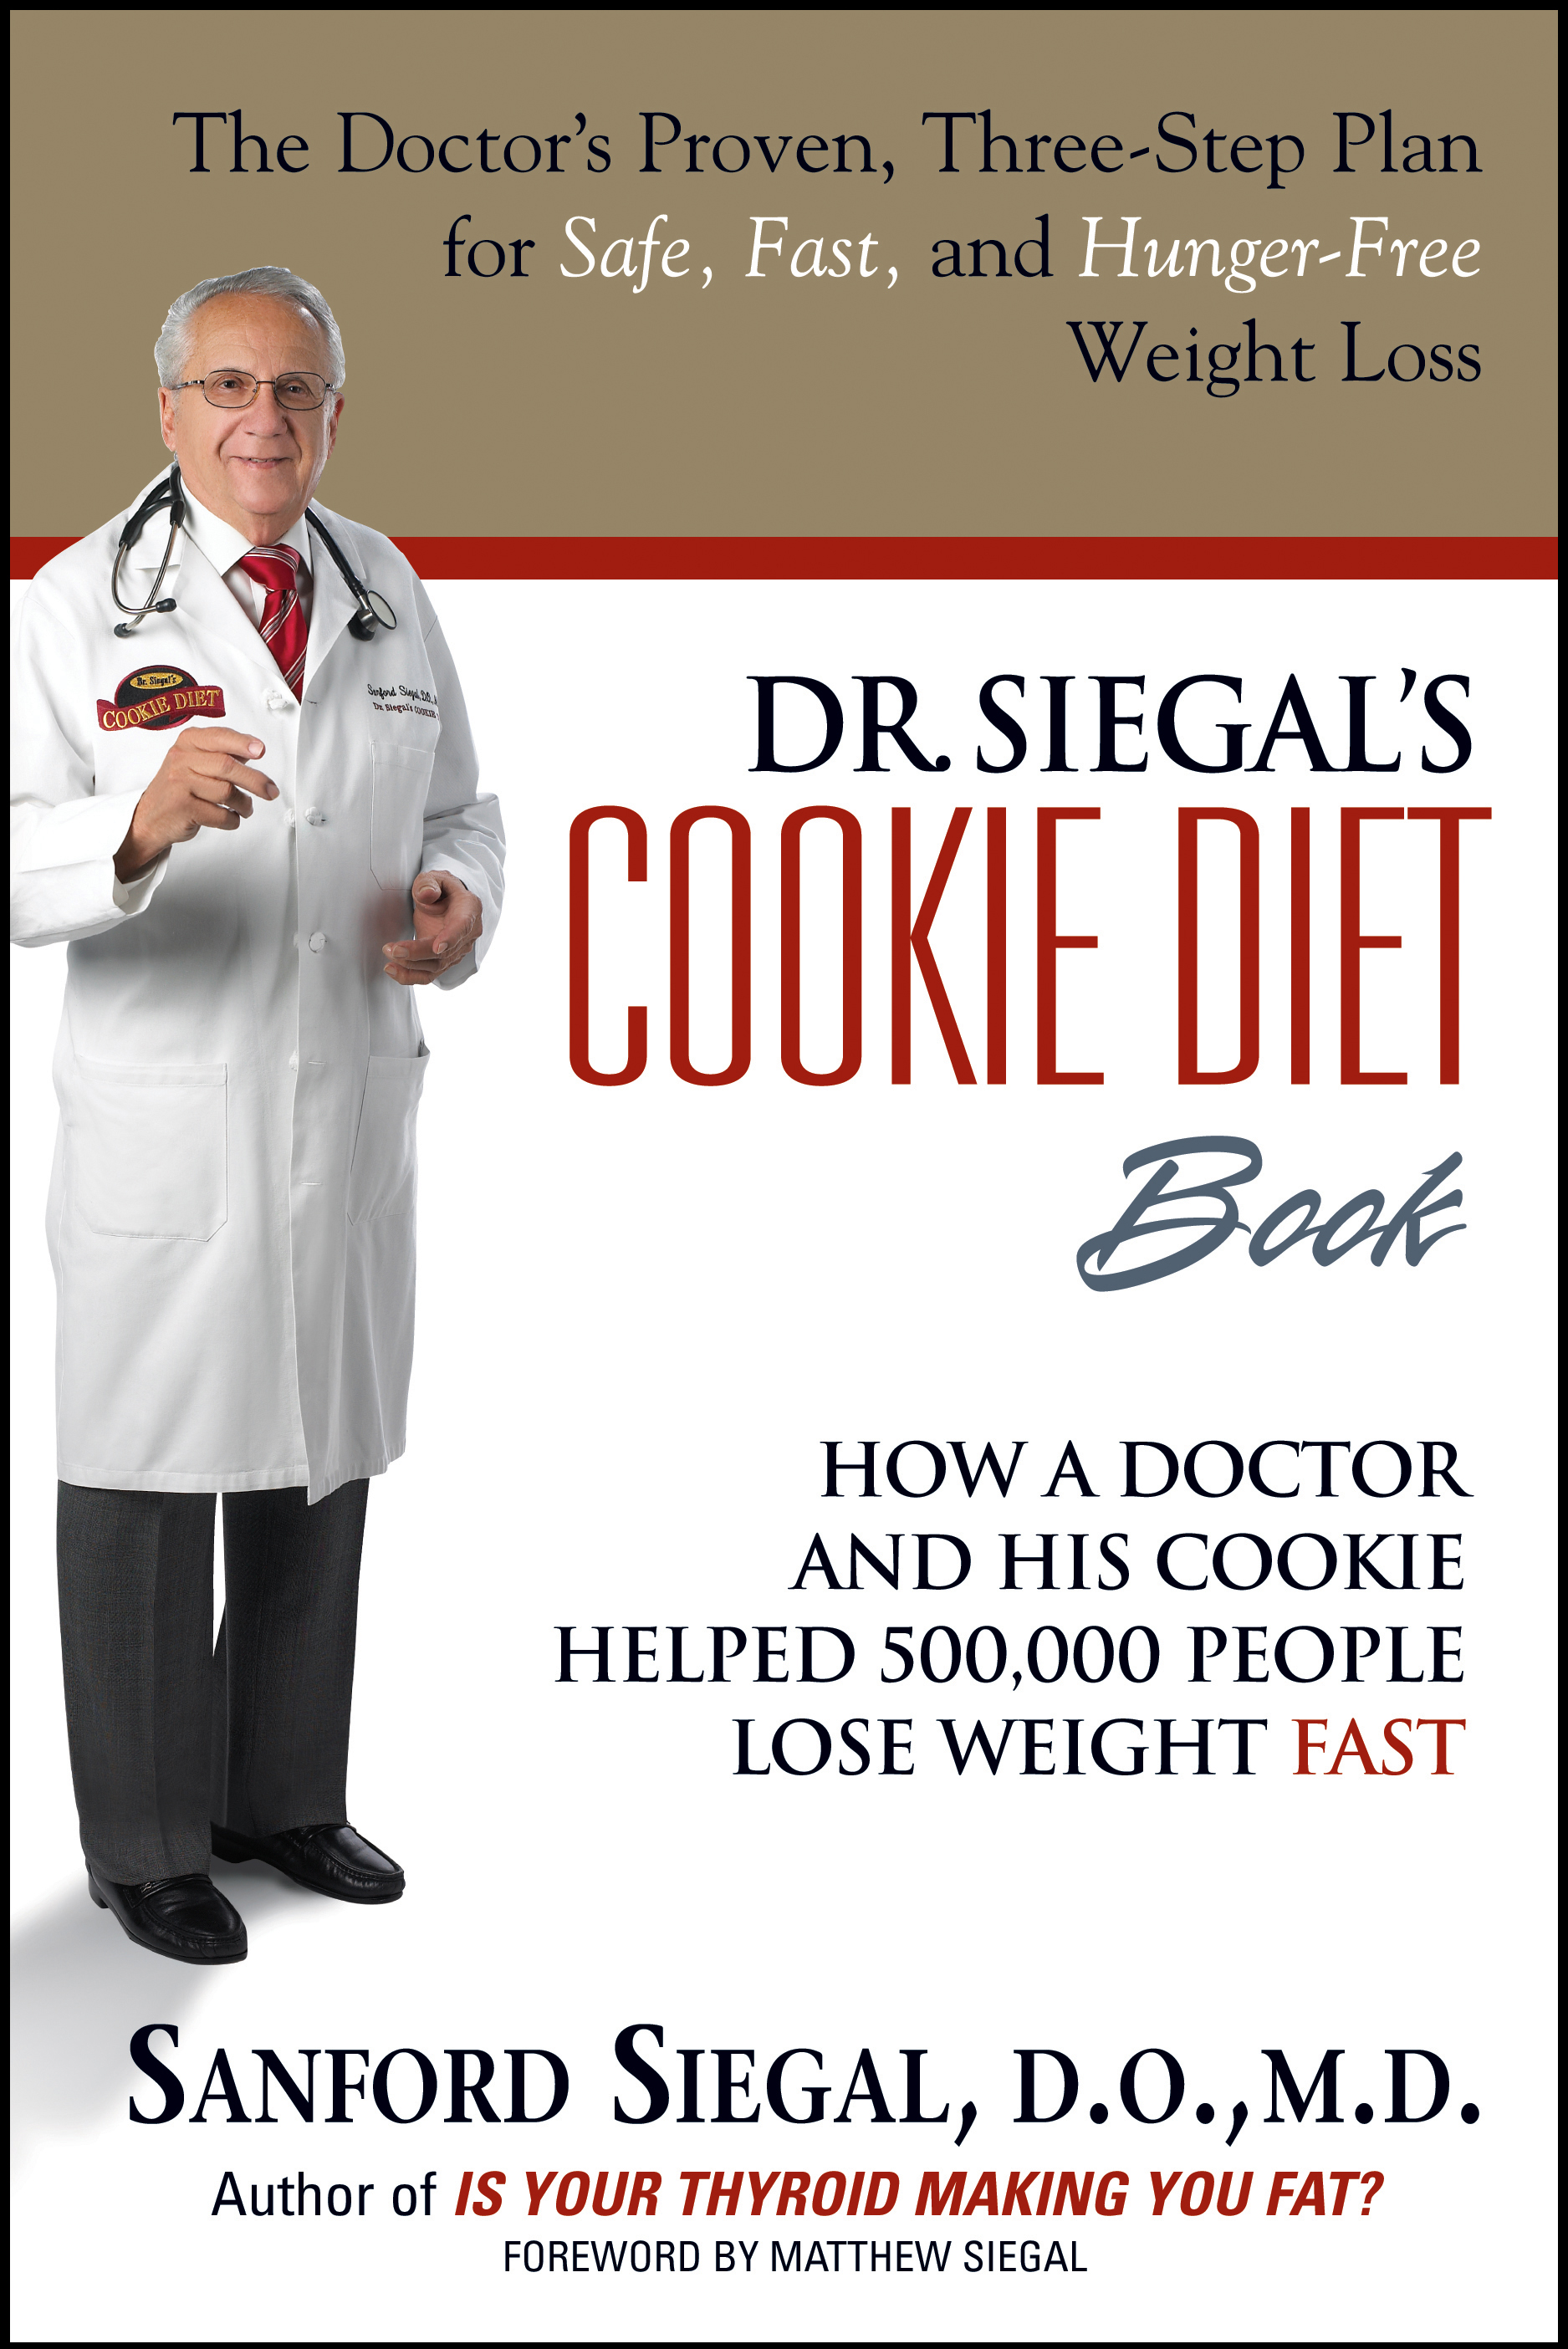 Dr. Siegal's Cookie Diet Book by Sanford Siegal, D.O., M.D ...